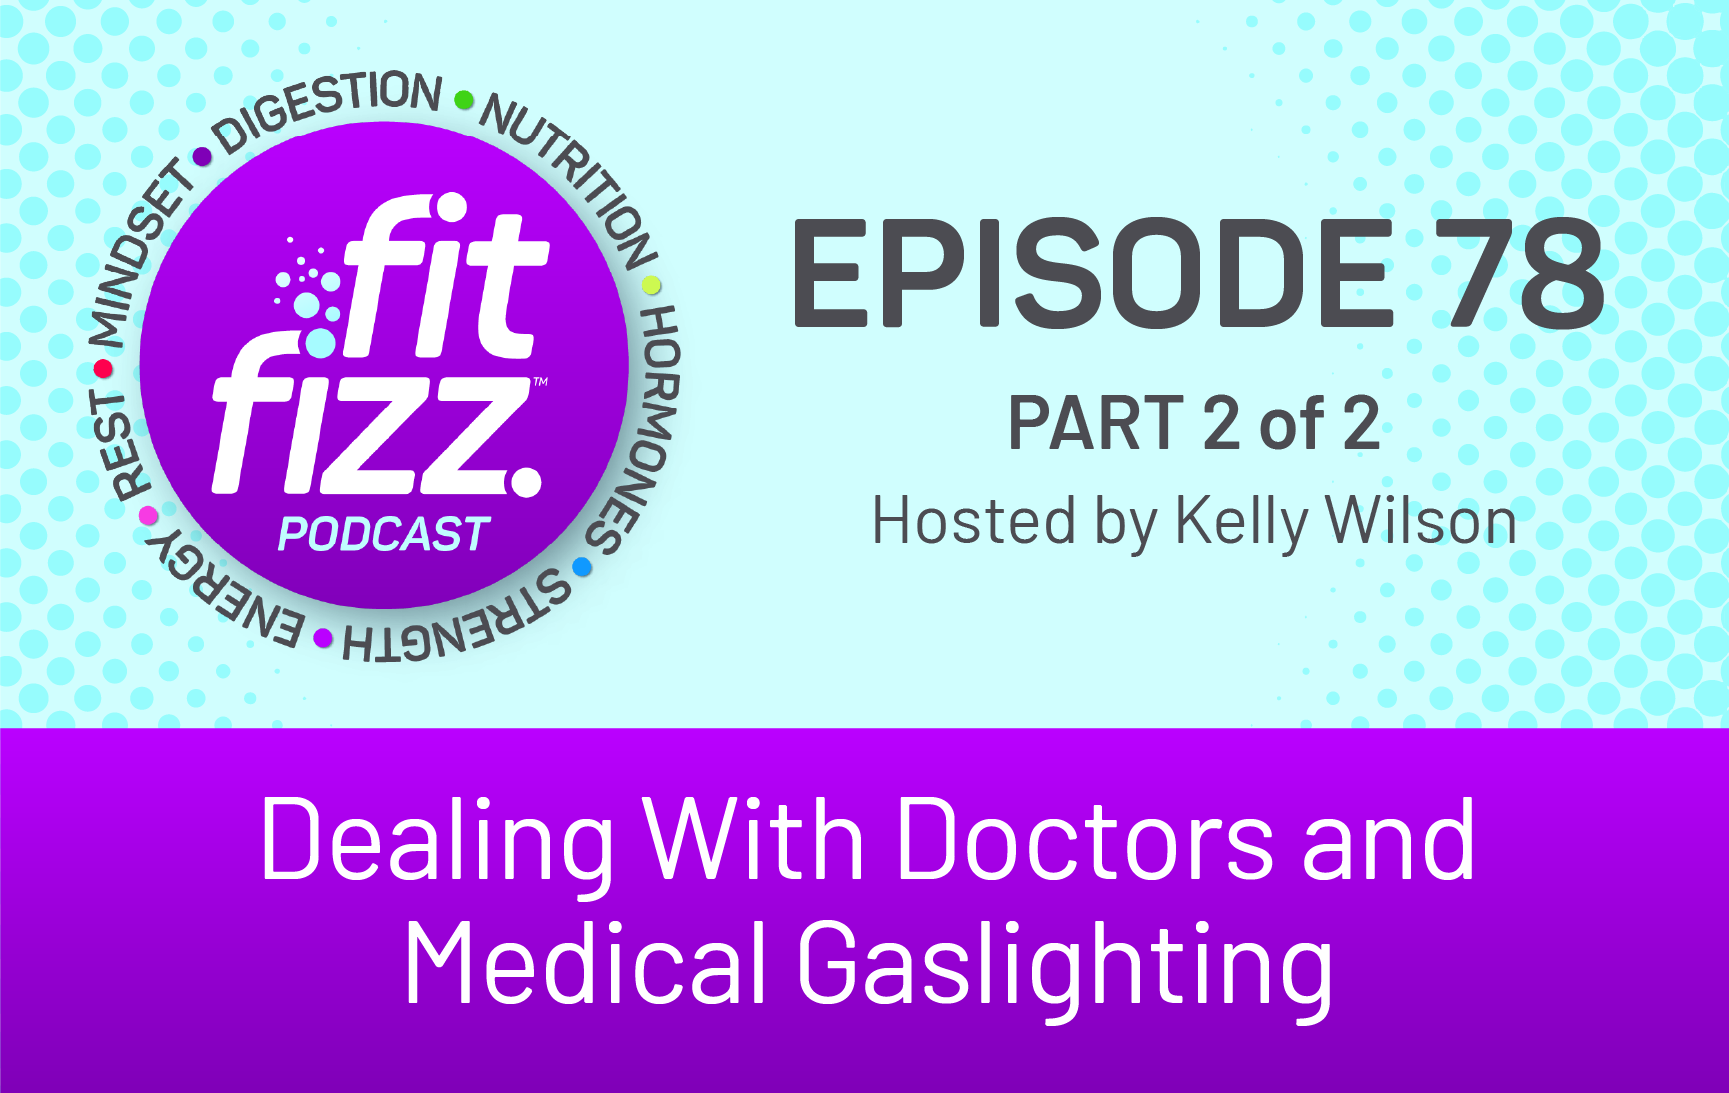 Ep. 78: Dealing With Doctors and Medical Gaslighting Part 2 of 2